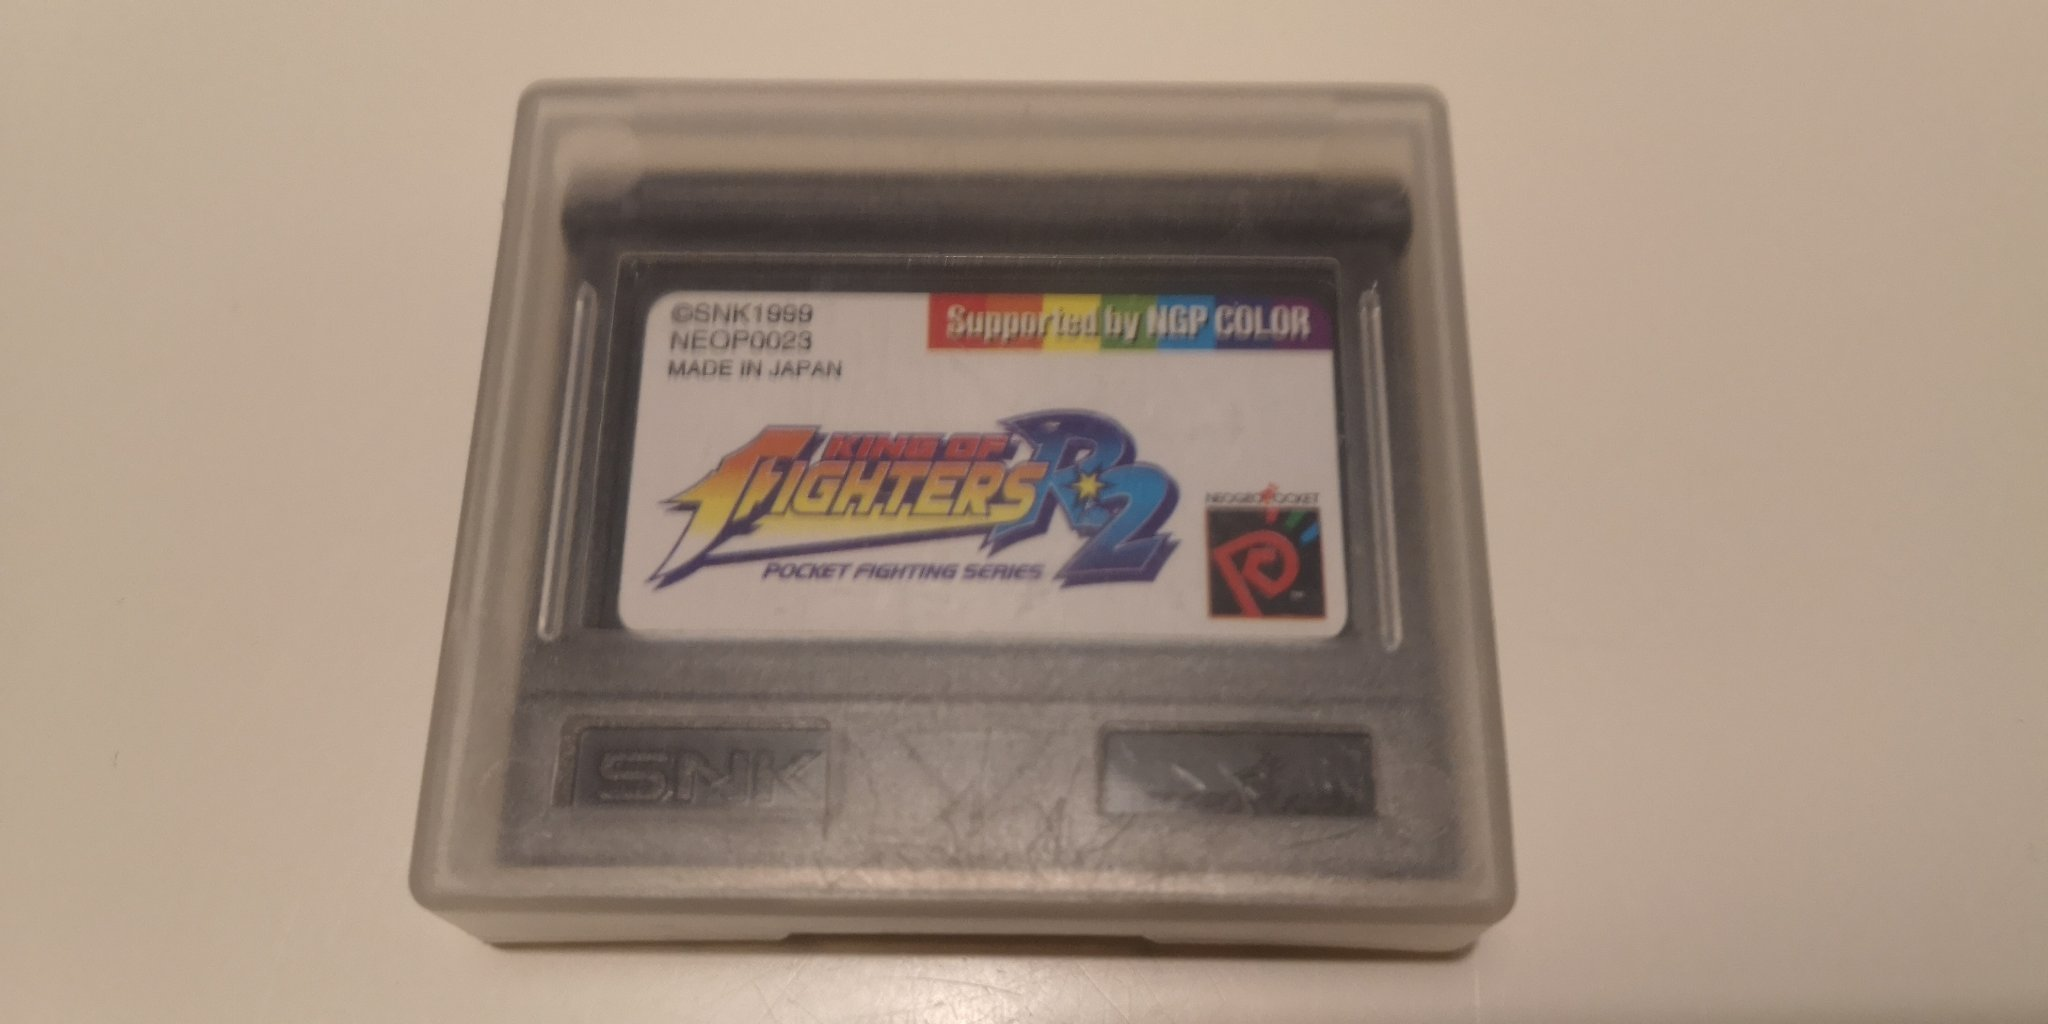 King of Fighters R2 Neo Geo Pocket Color NeoGeo. NEOP0023.